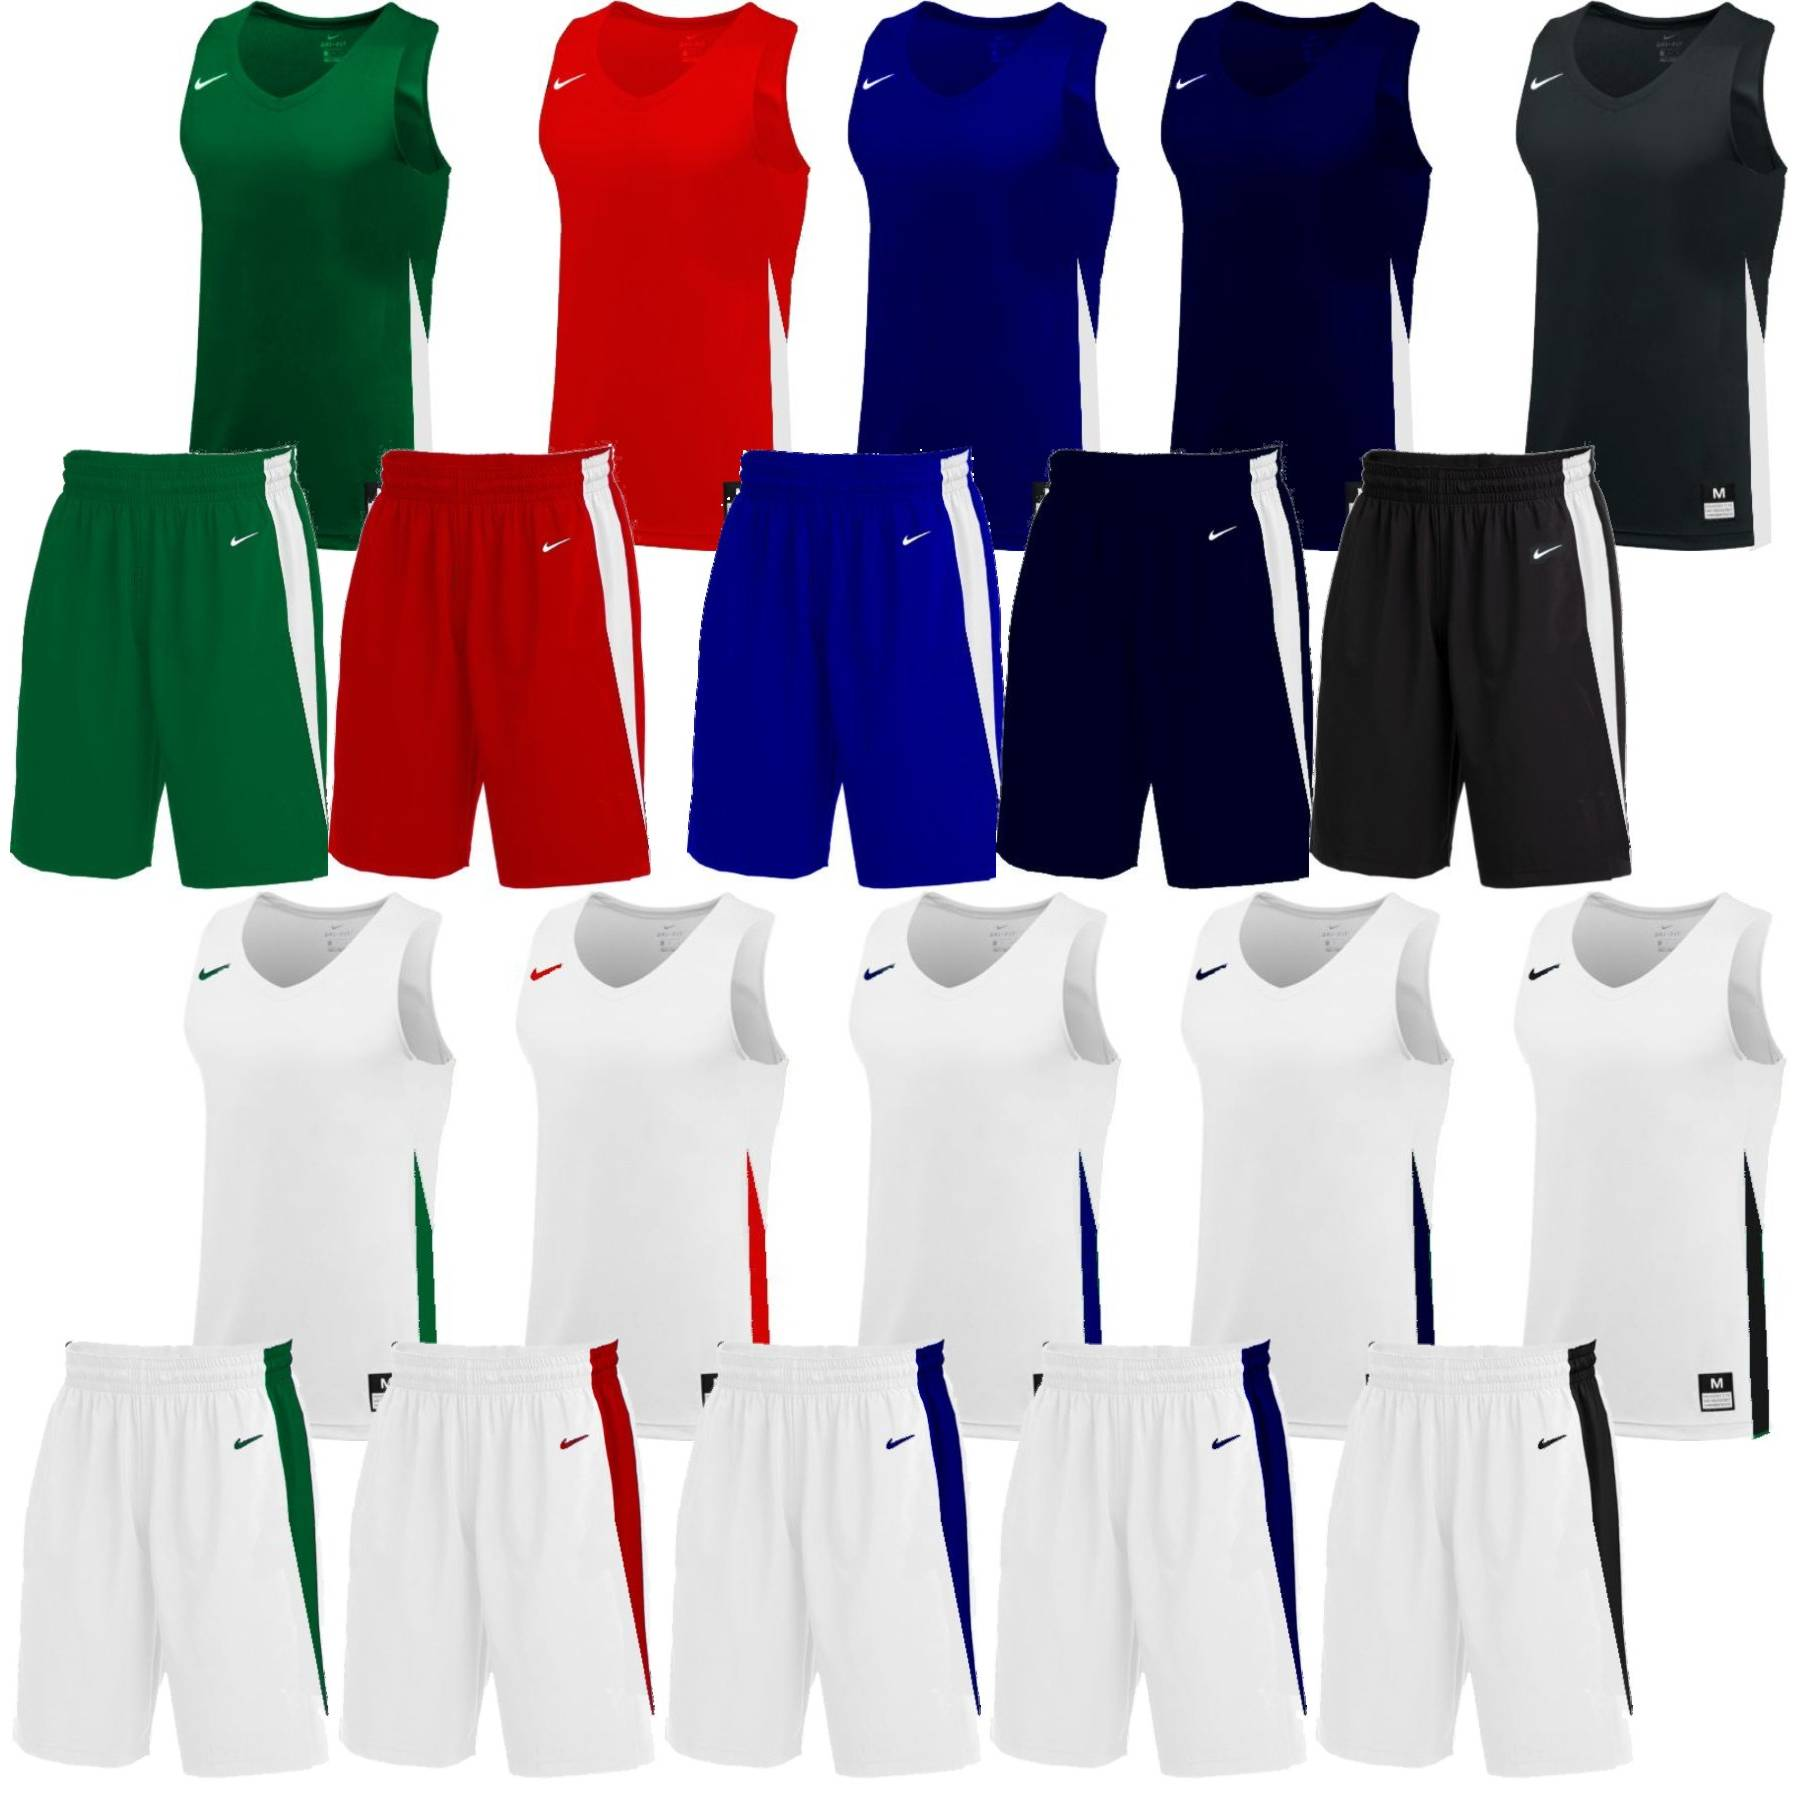 Teamwear - Nike Kids/Youth Team Basketball Stock Kit